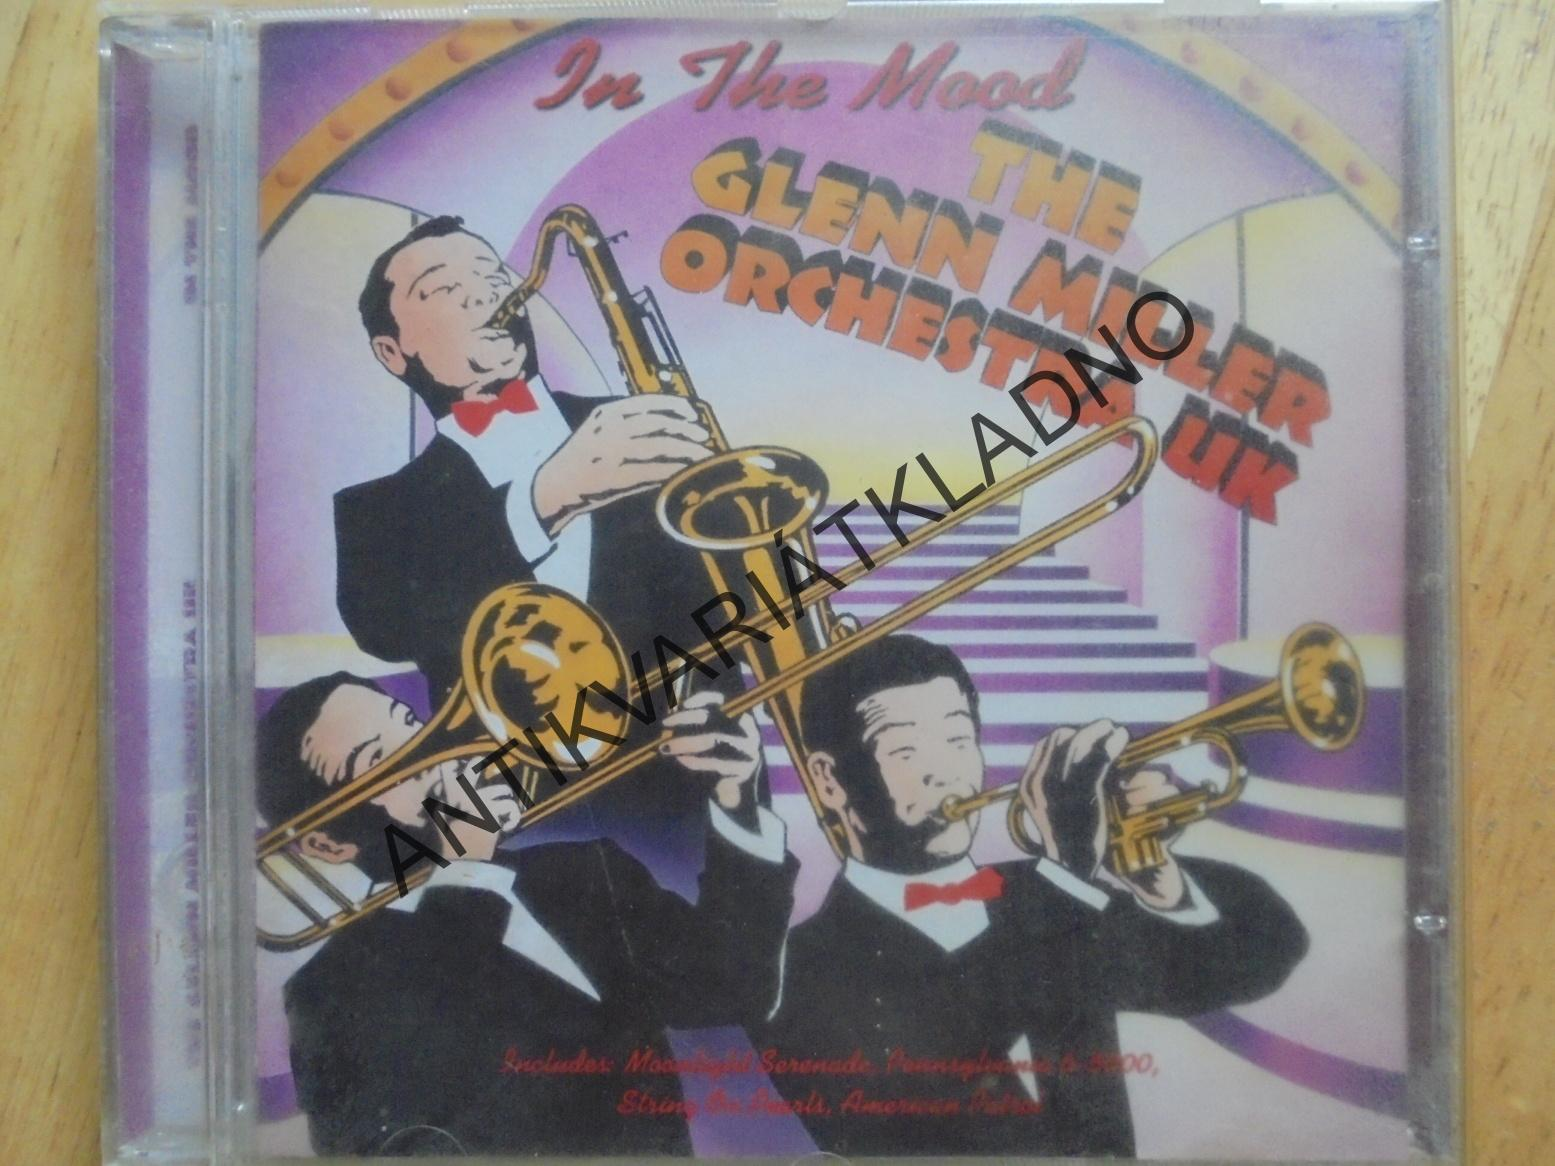 IN THE MOOD THE GLENN MILLER ORCHESTRA UK, CD